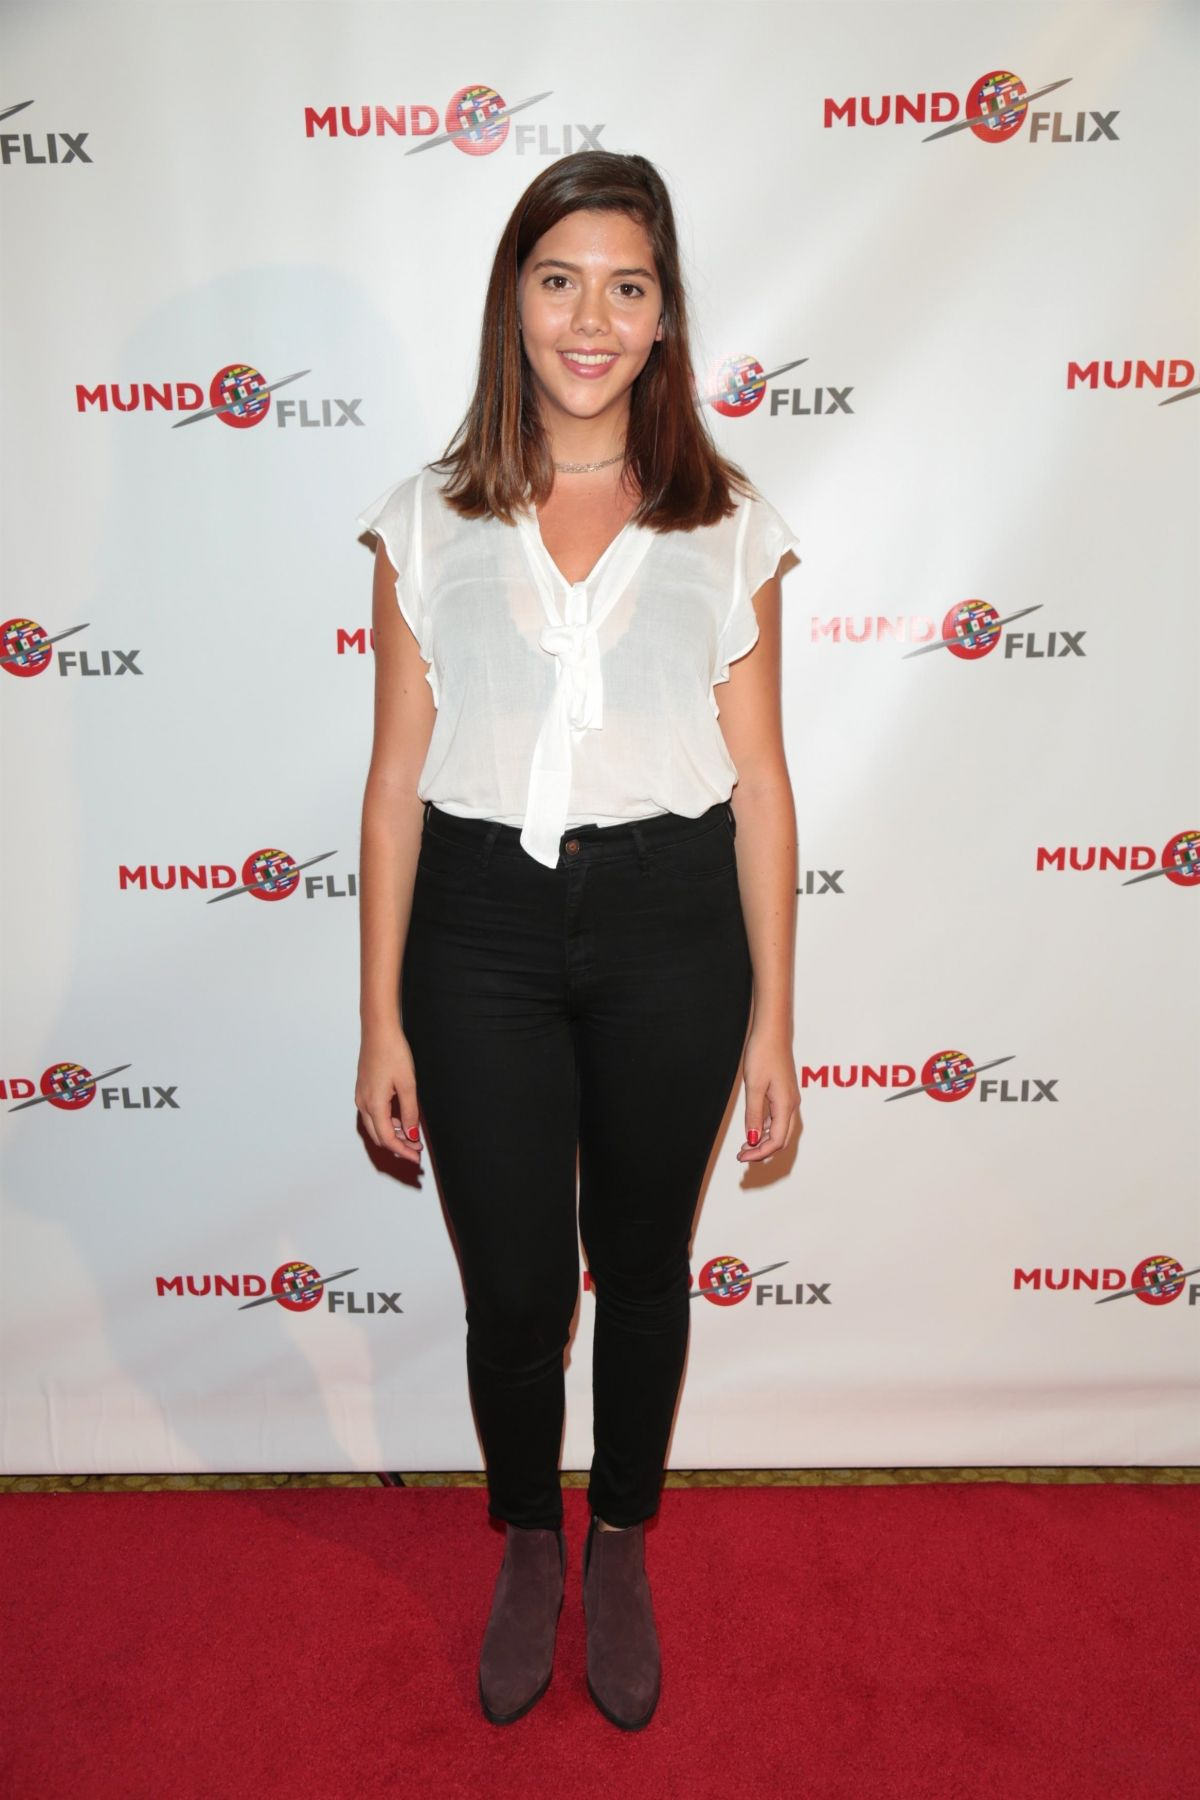 NUNU ROCA at MundoFlix Launch Party in Studio City 08/28/2017